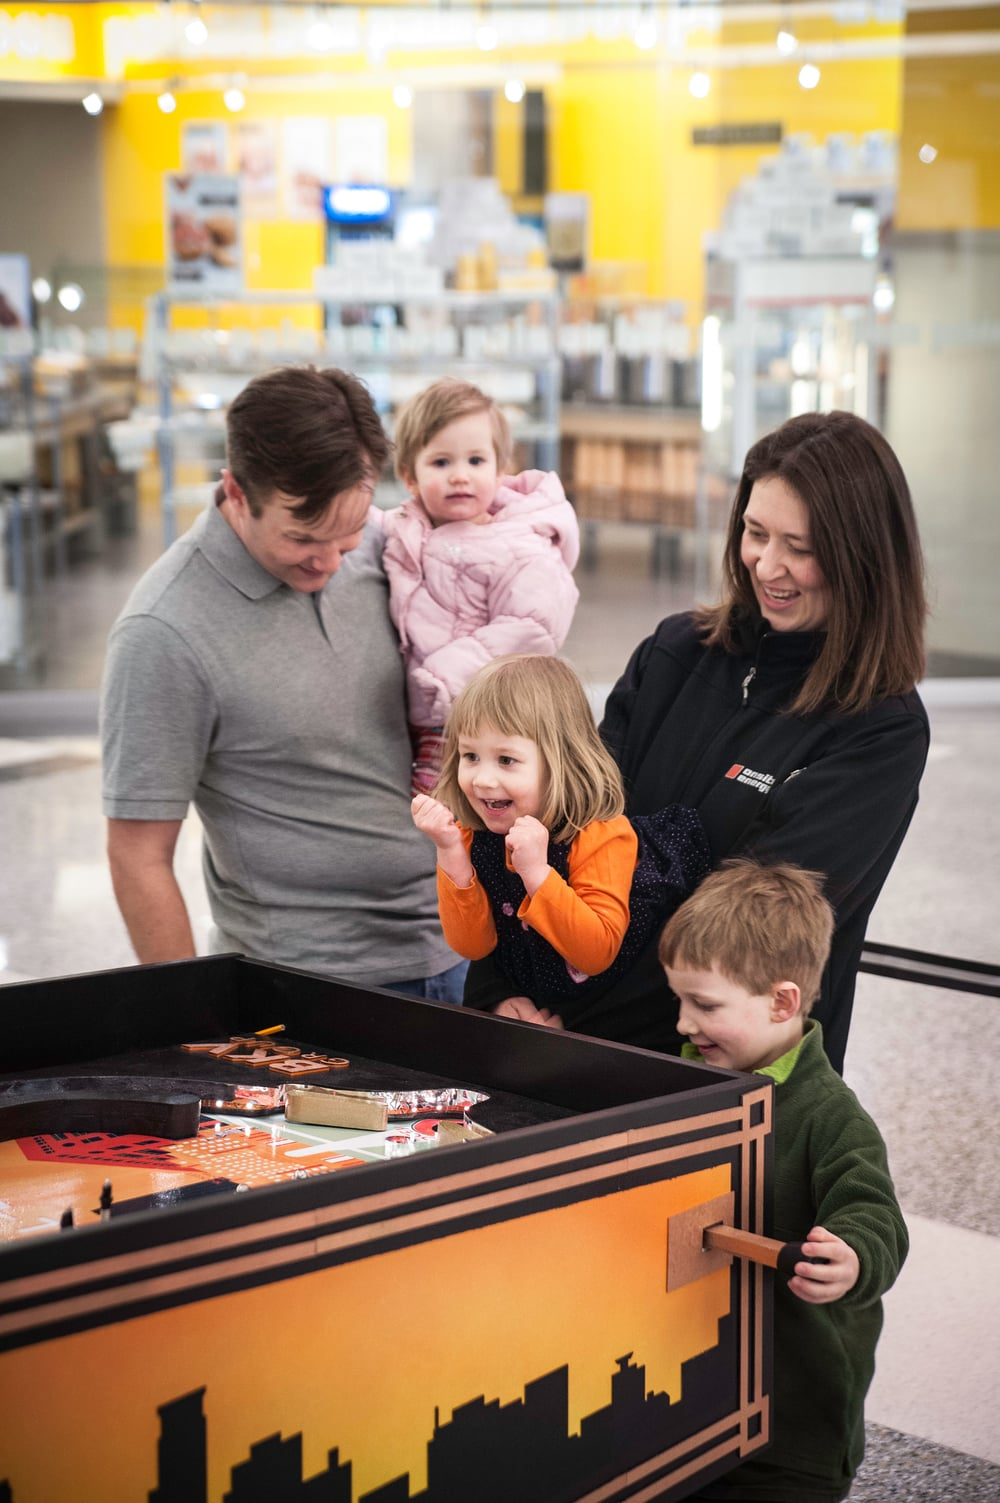 Skyway Open provides excitement for the whole family.